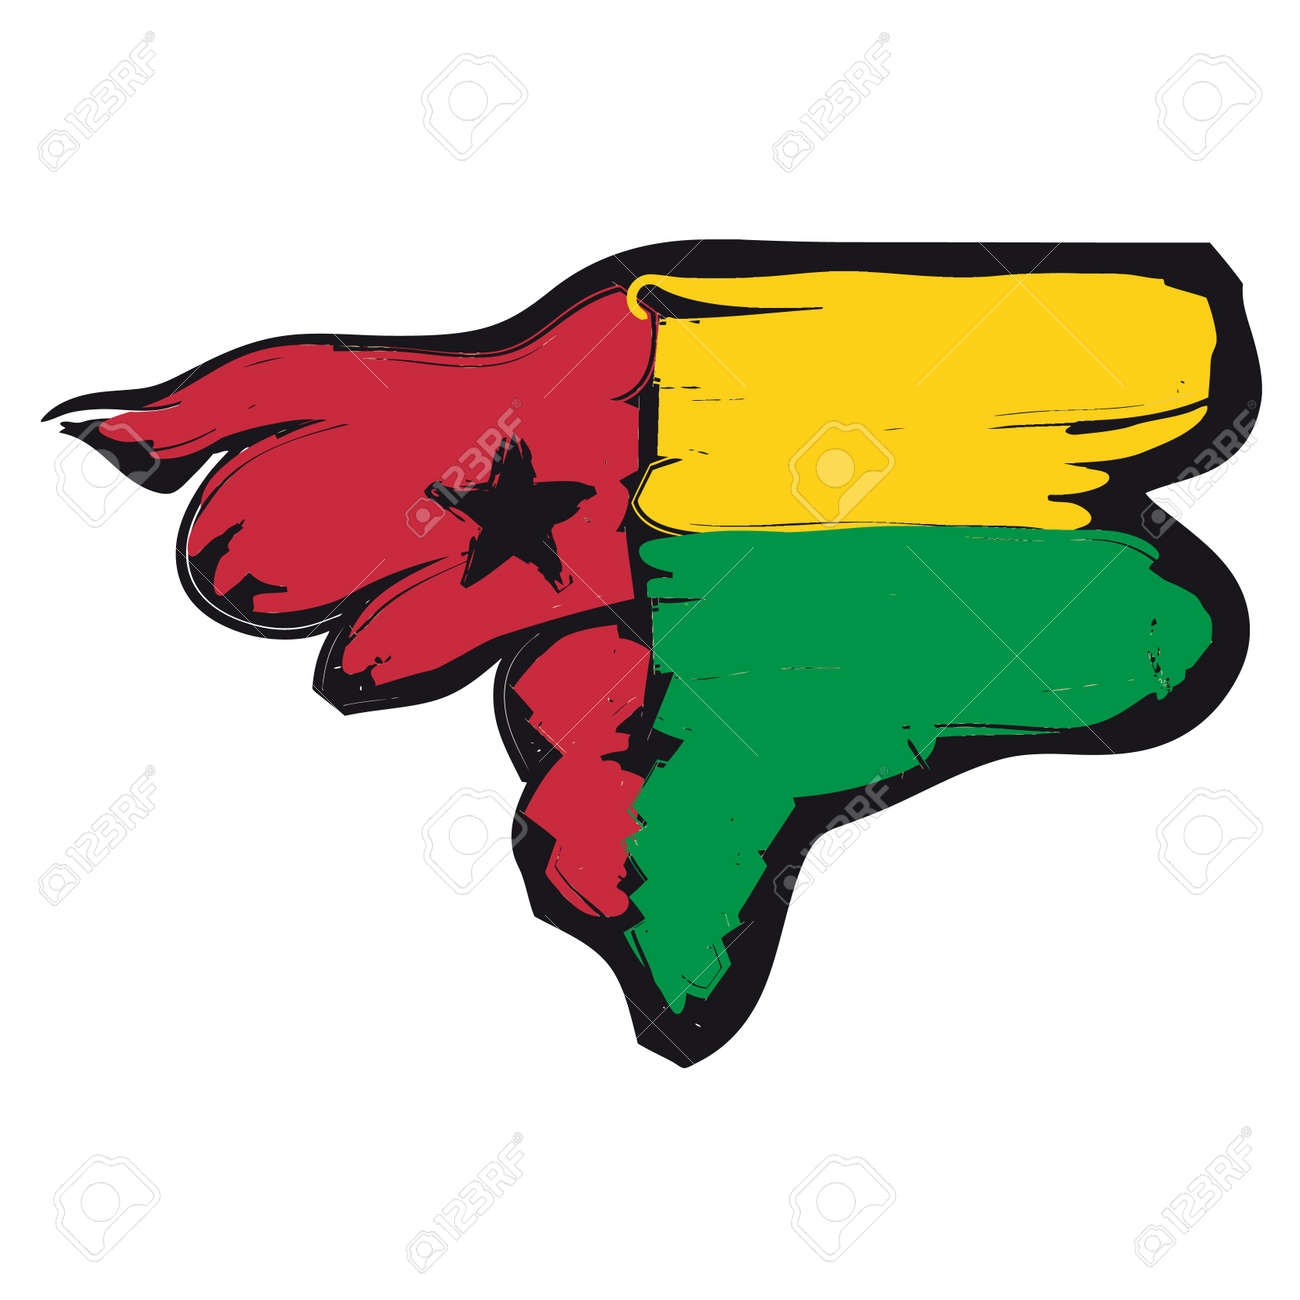 map flag Guinea Bissau Stock Vector - 10638007